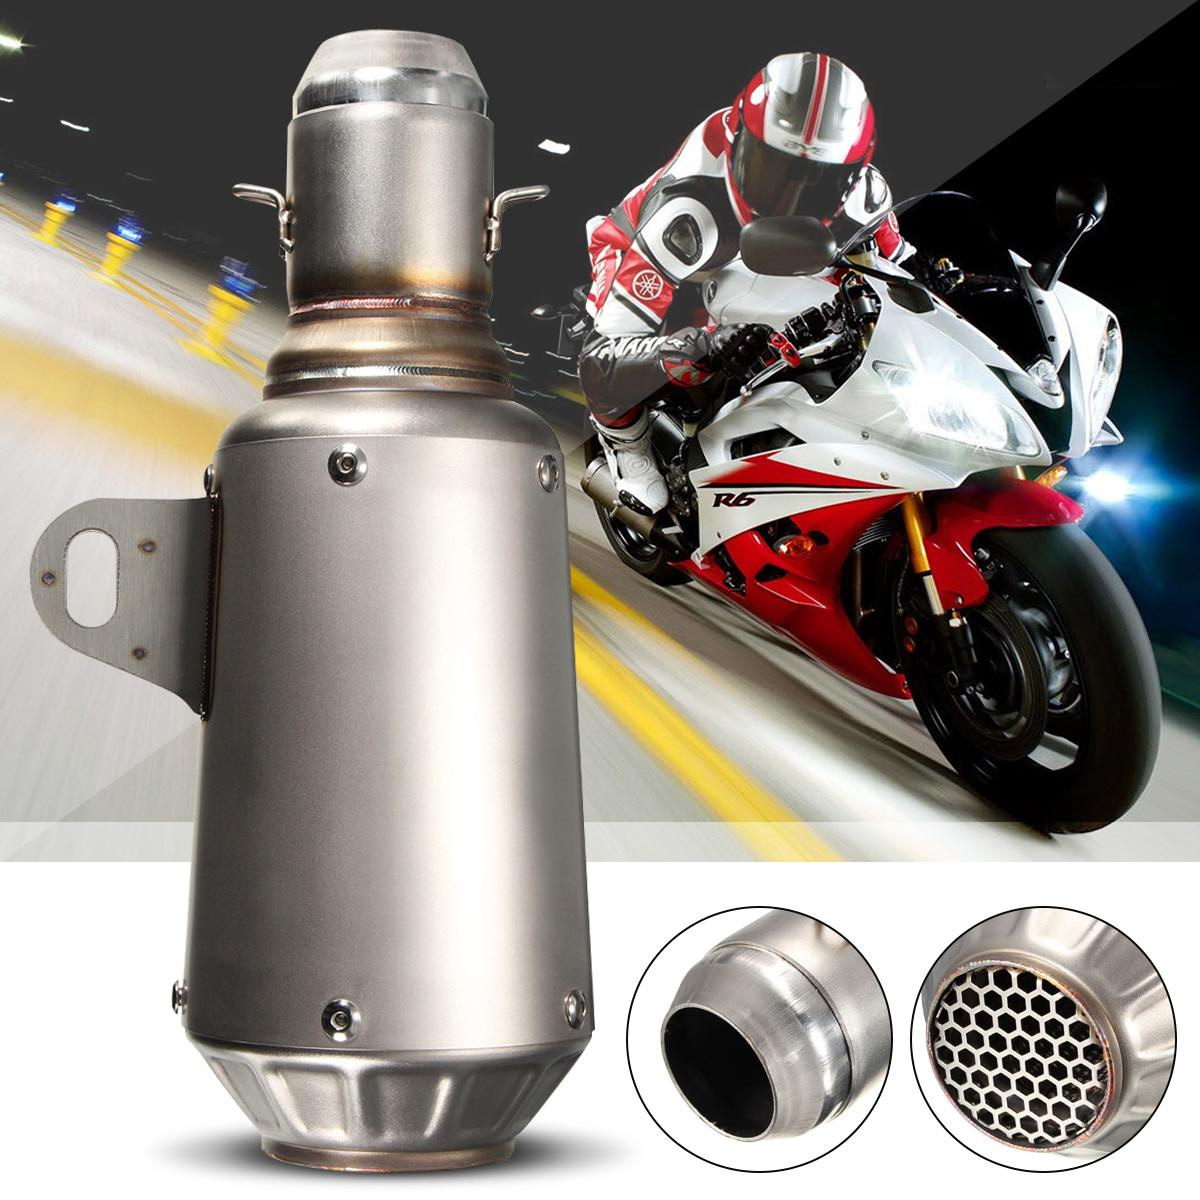 51mm 265mm Stainless Steel <font><b>Motorcycle</b></font> <font><b>Exhaust</b></font> Muffler Pipe for <font><b>SC</b></font> GP Racing Moto Motorbike ATV for Honda/Kawasaki/Suzuki image